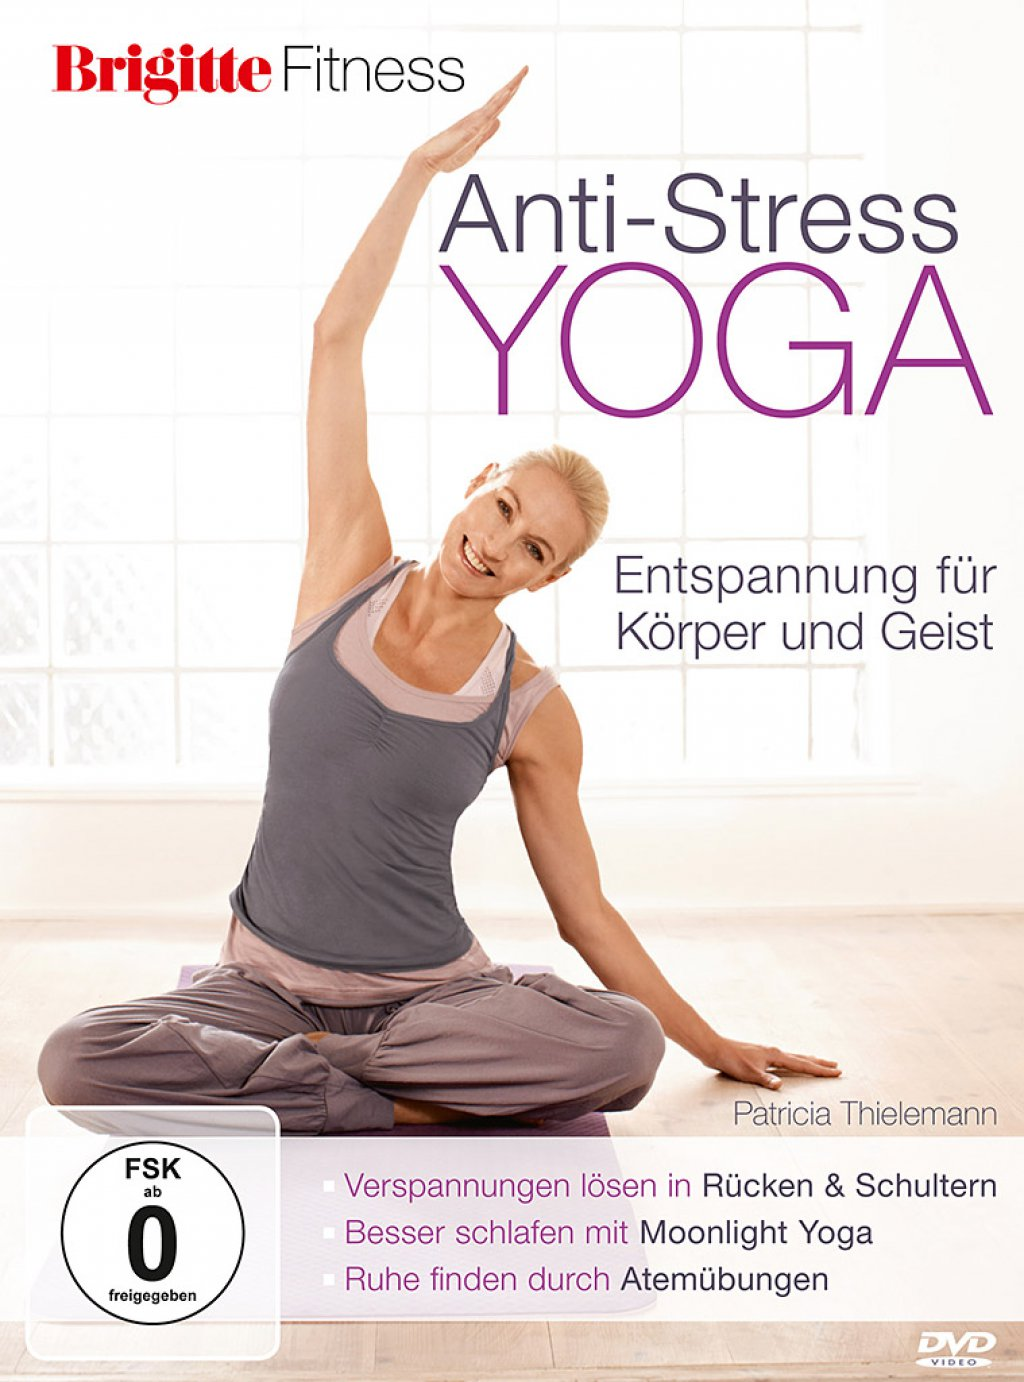 Brigitte Fitness - Anti-Stress Yoga (DVD)